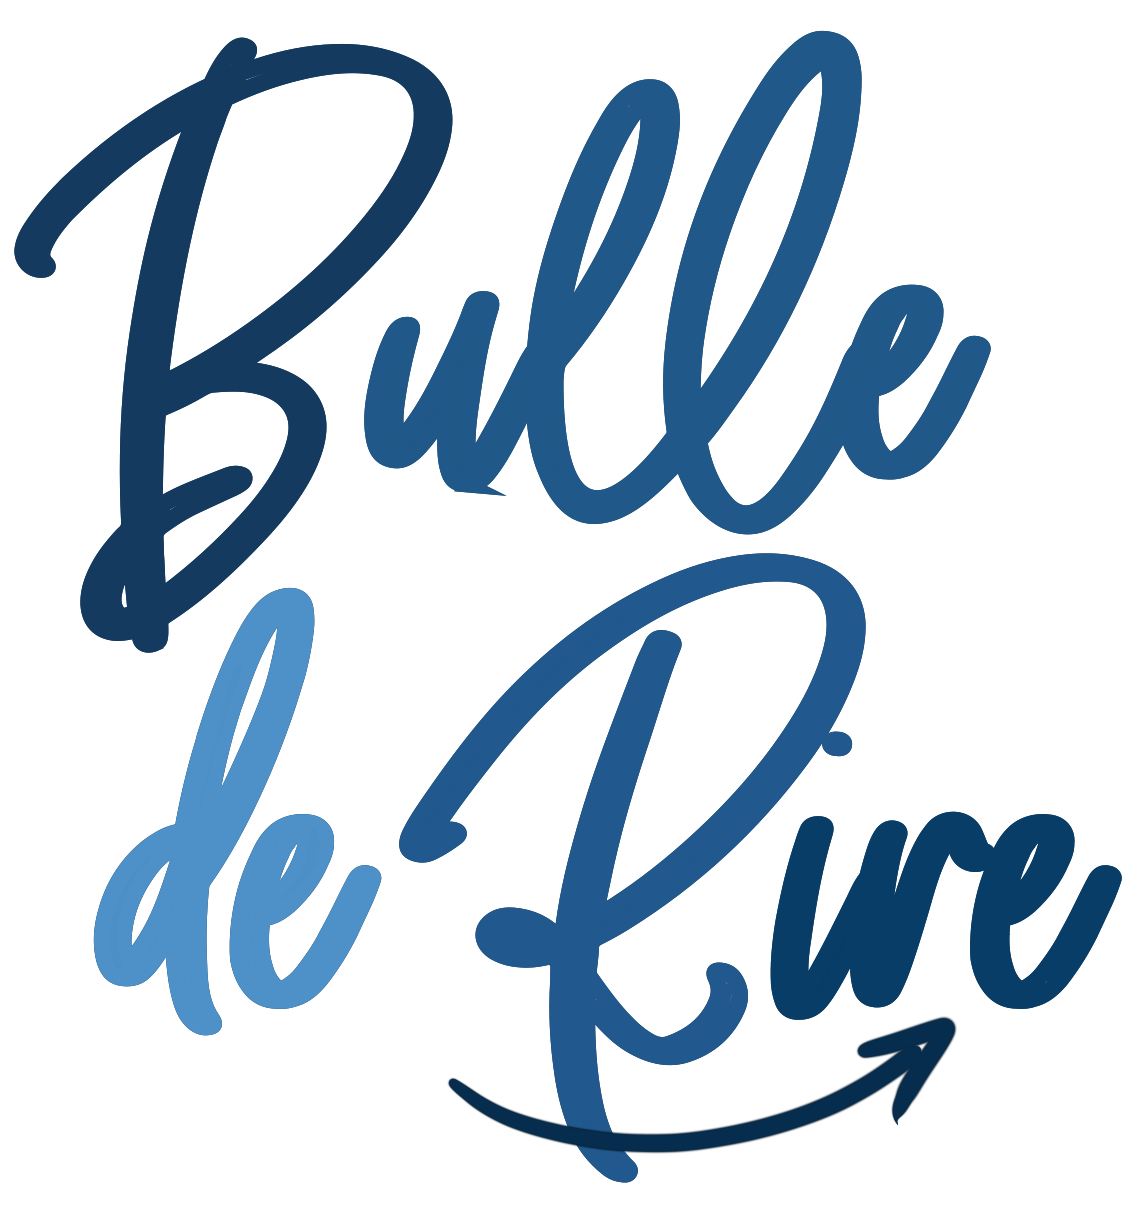 Bulle de rire Yoga du rire logo simple